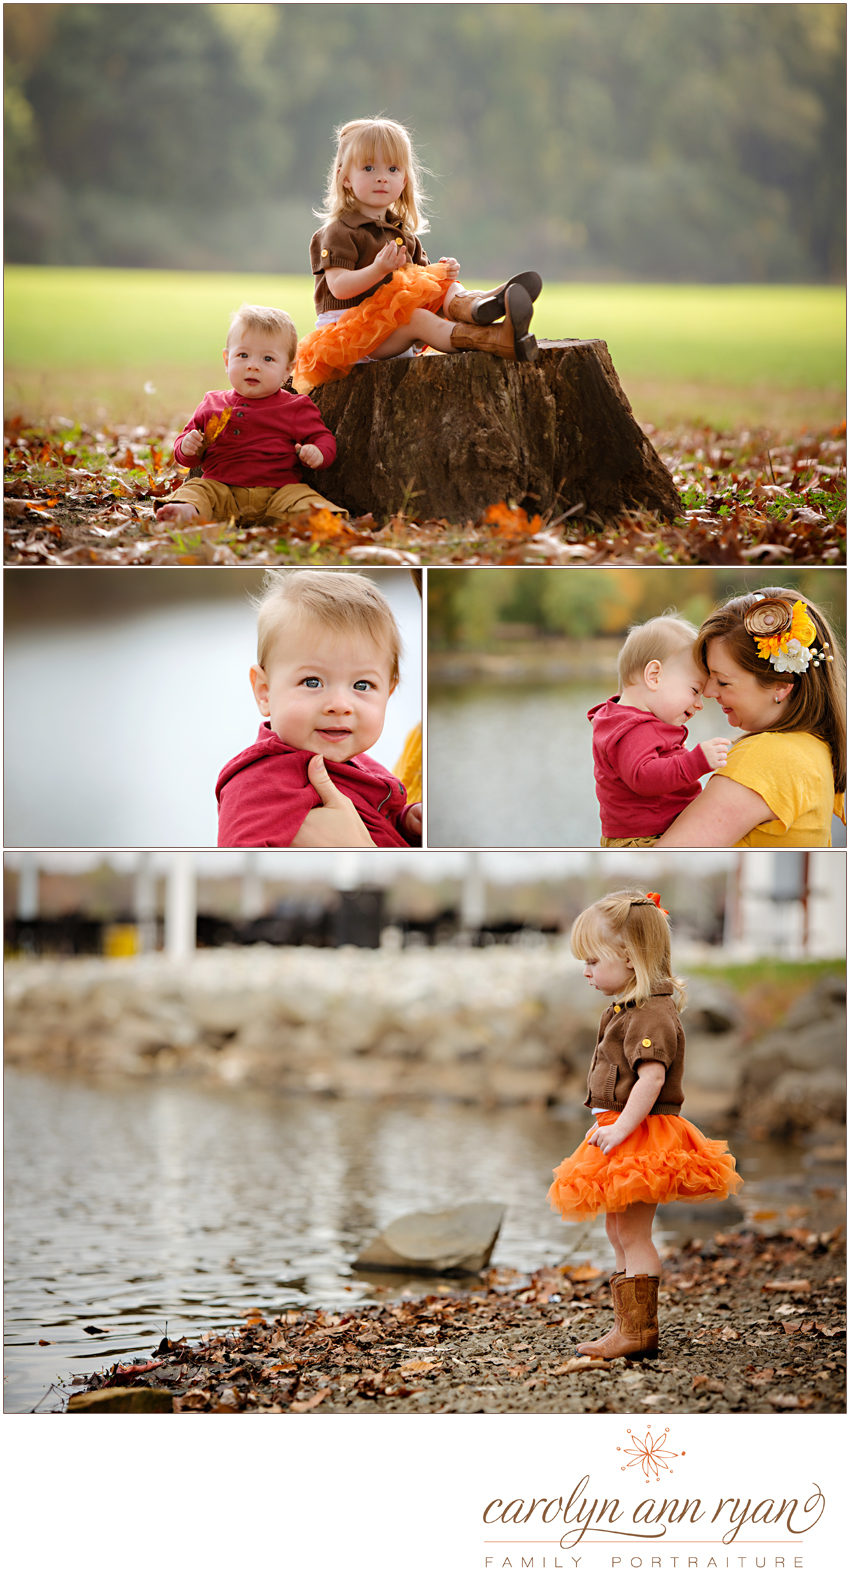 Dreamy Waxhaw, NC Family Portraits by Carolyn Ann Ryan with Thanksgiving Theme